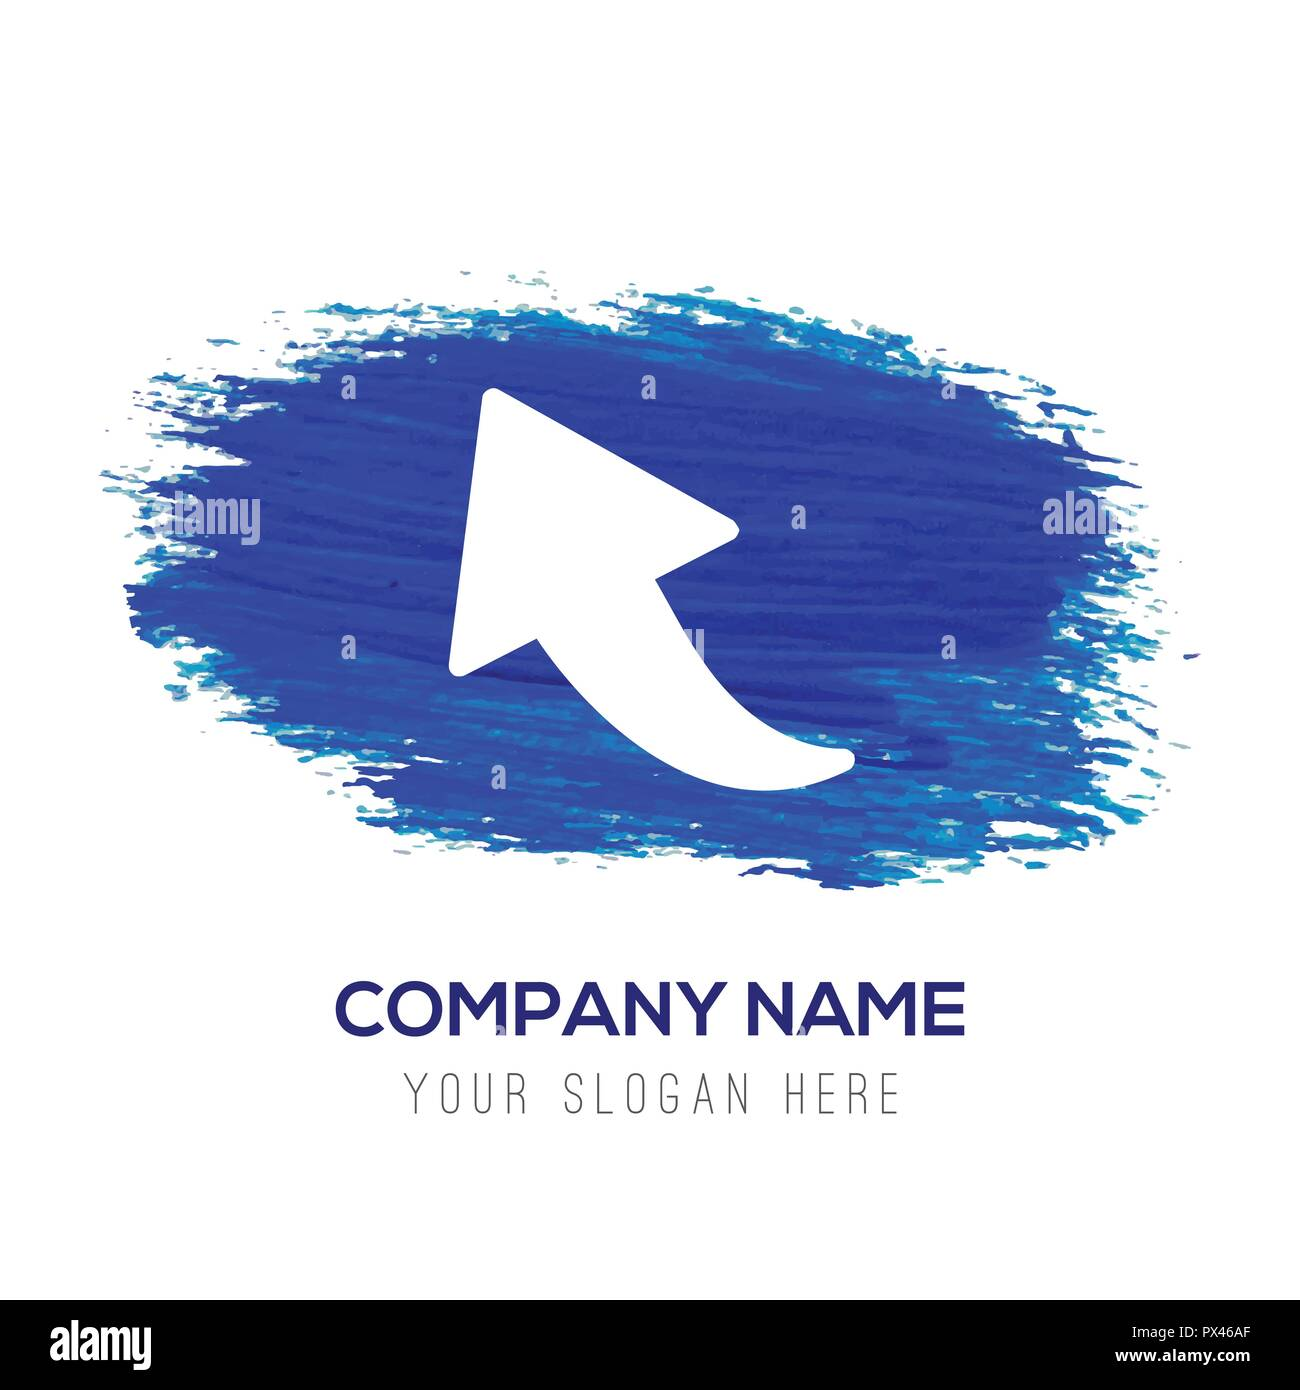 Upper Arrow Icon Blue Watercolor Background Stock Vector Image Art Alamy